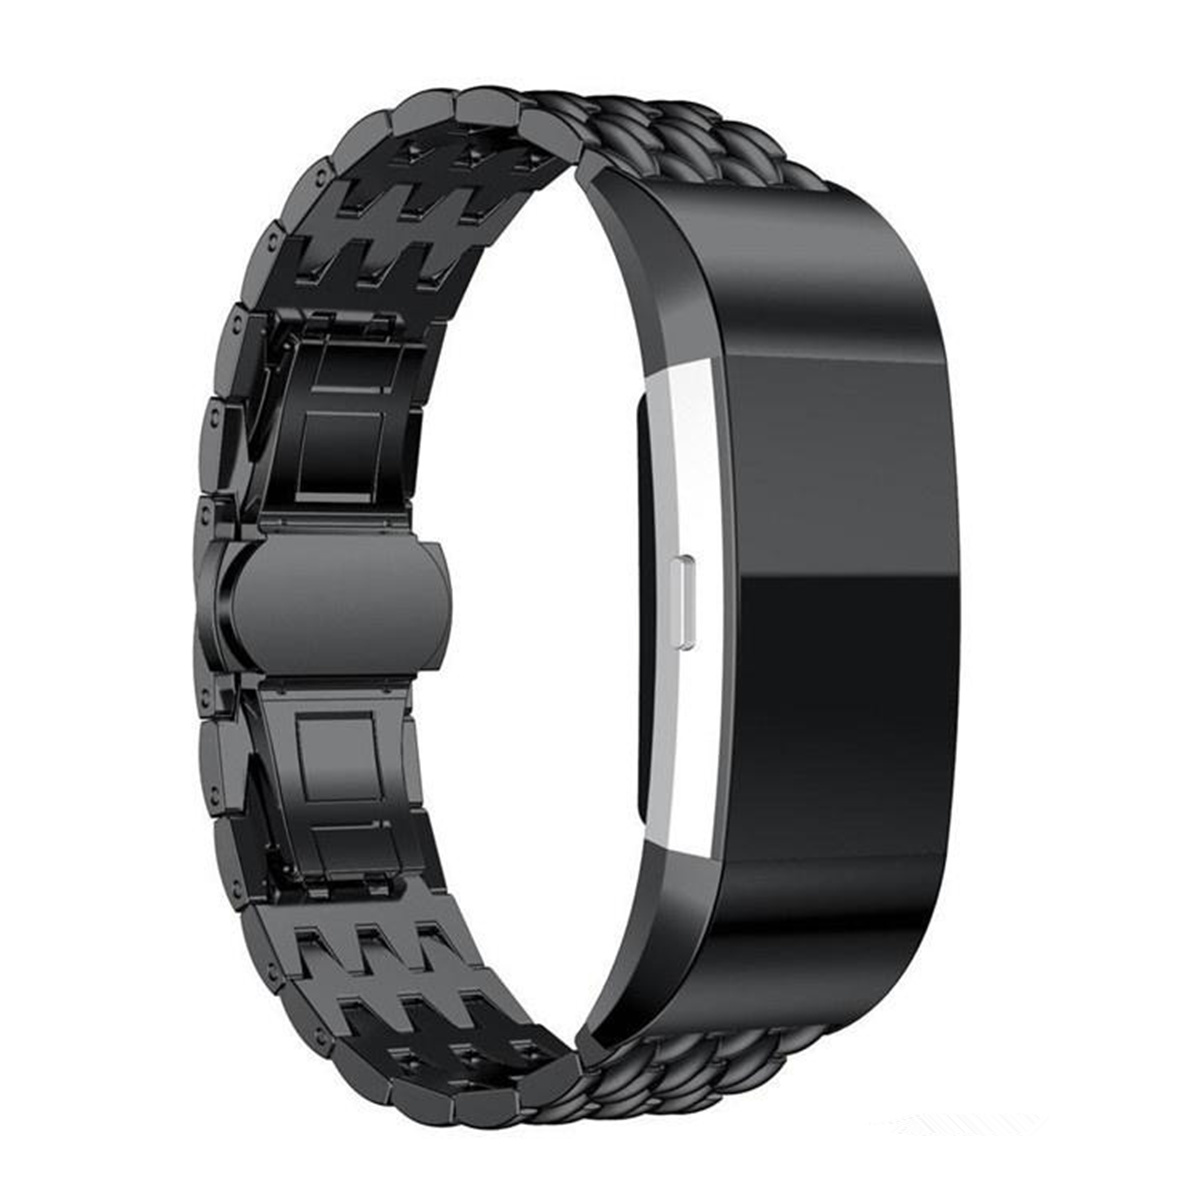 Banded Bands: Replacement Screwless Metal Strap Stainless Wrist Band For